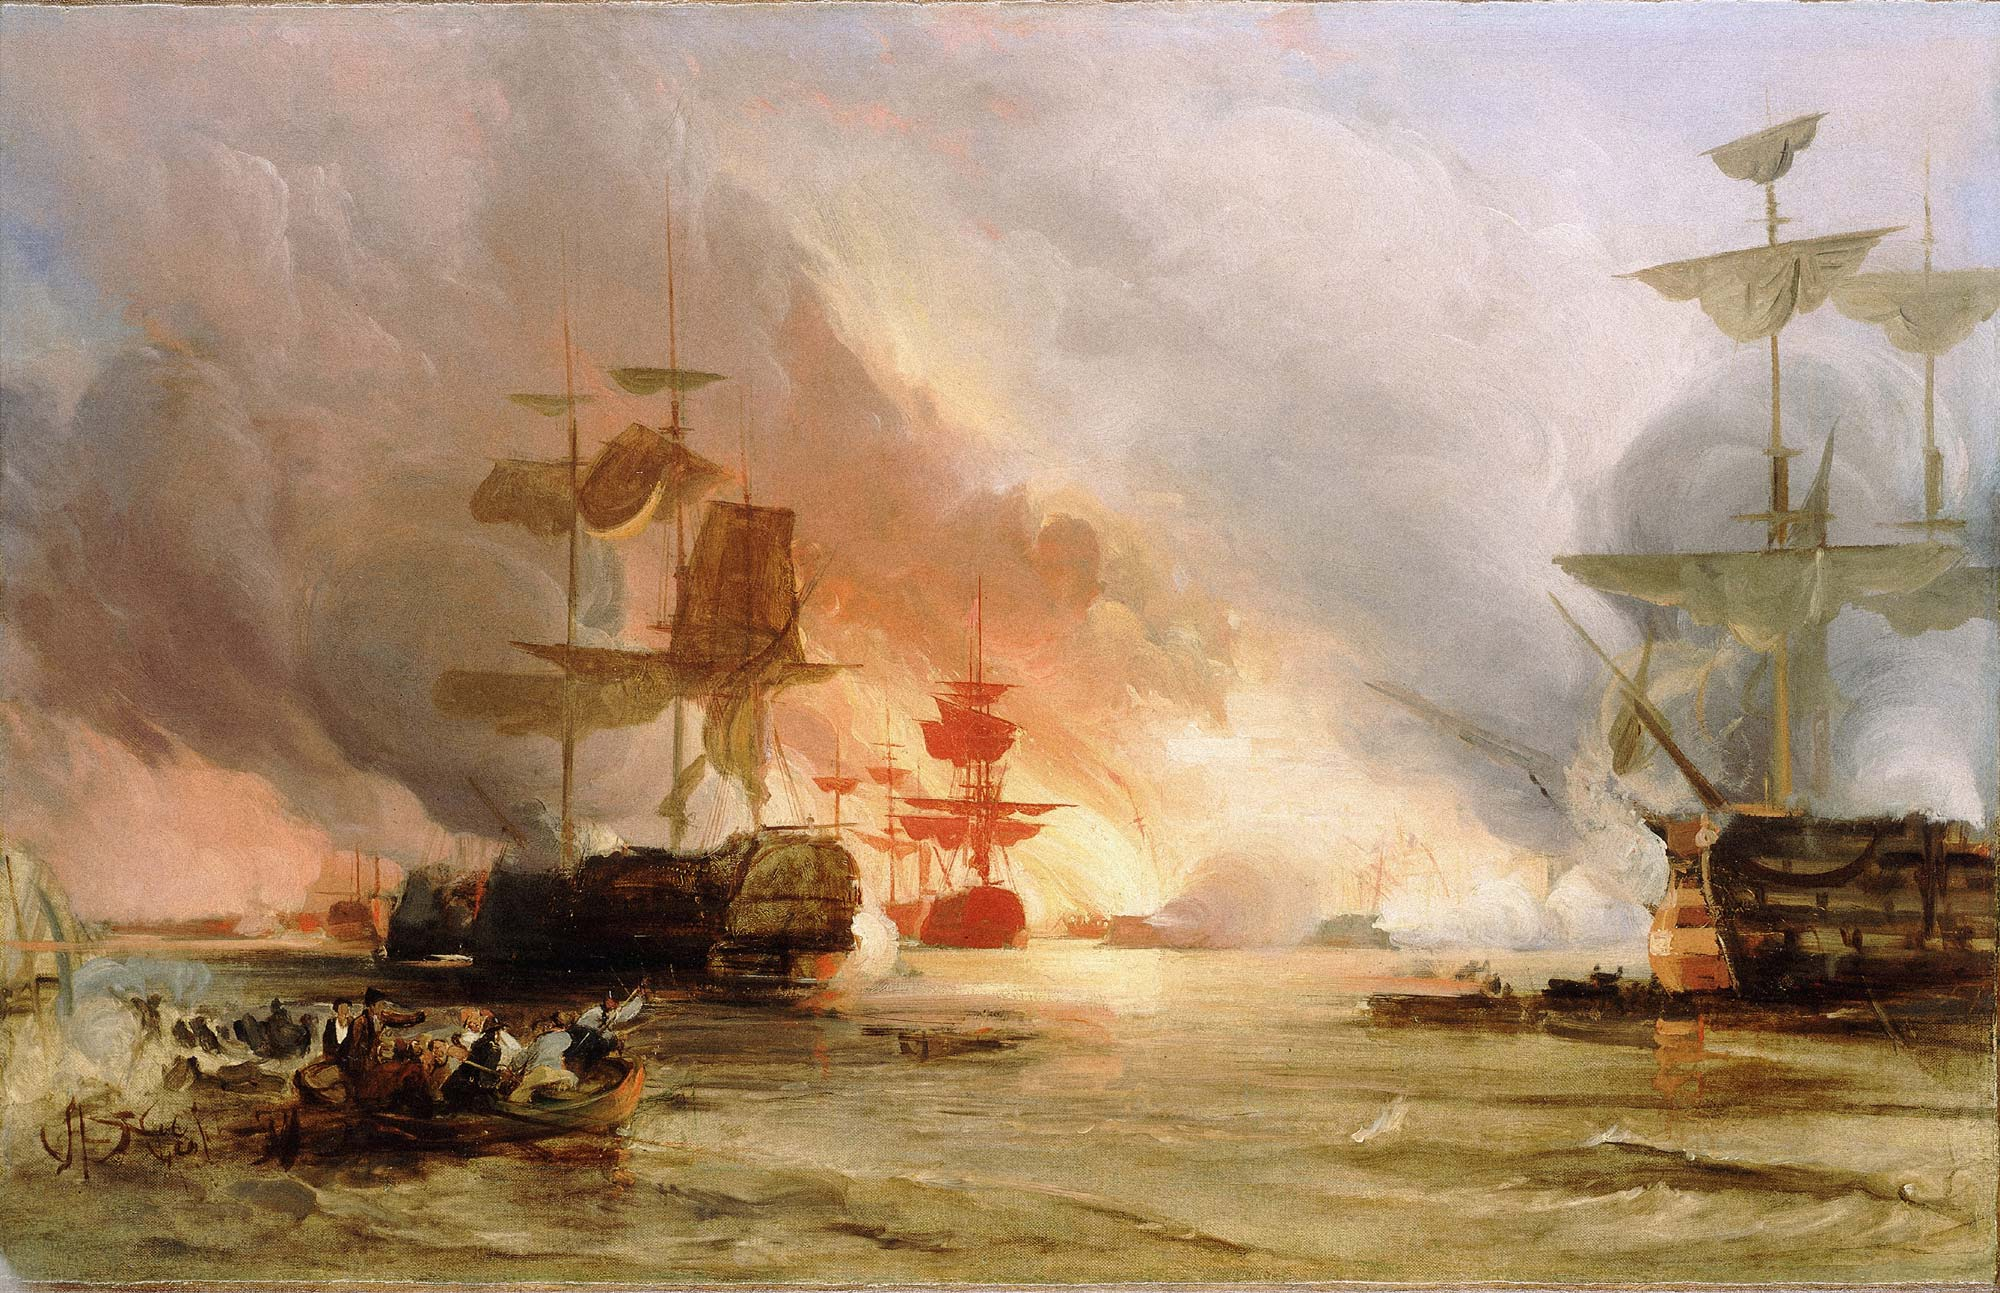 The Bombardment of Algiers, August 27, 1816 by George Chambers Senior.